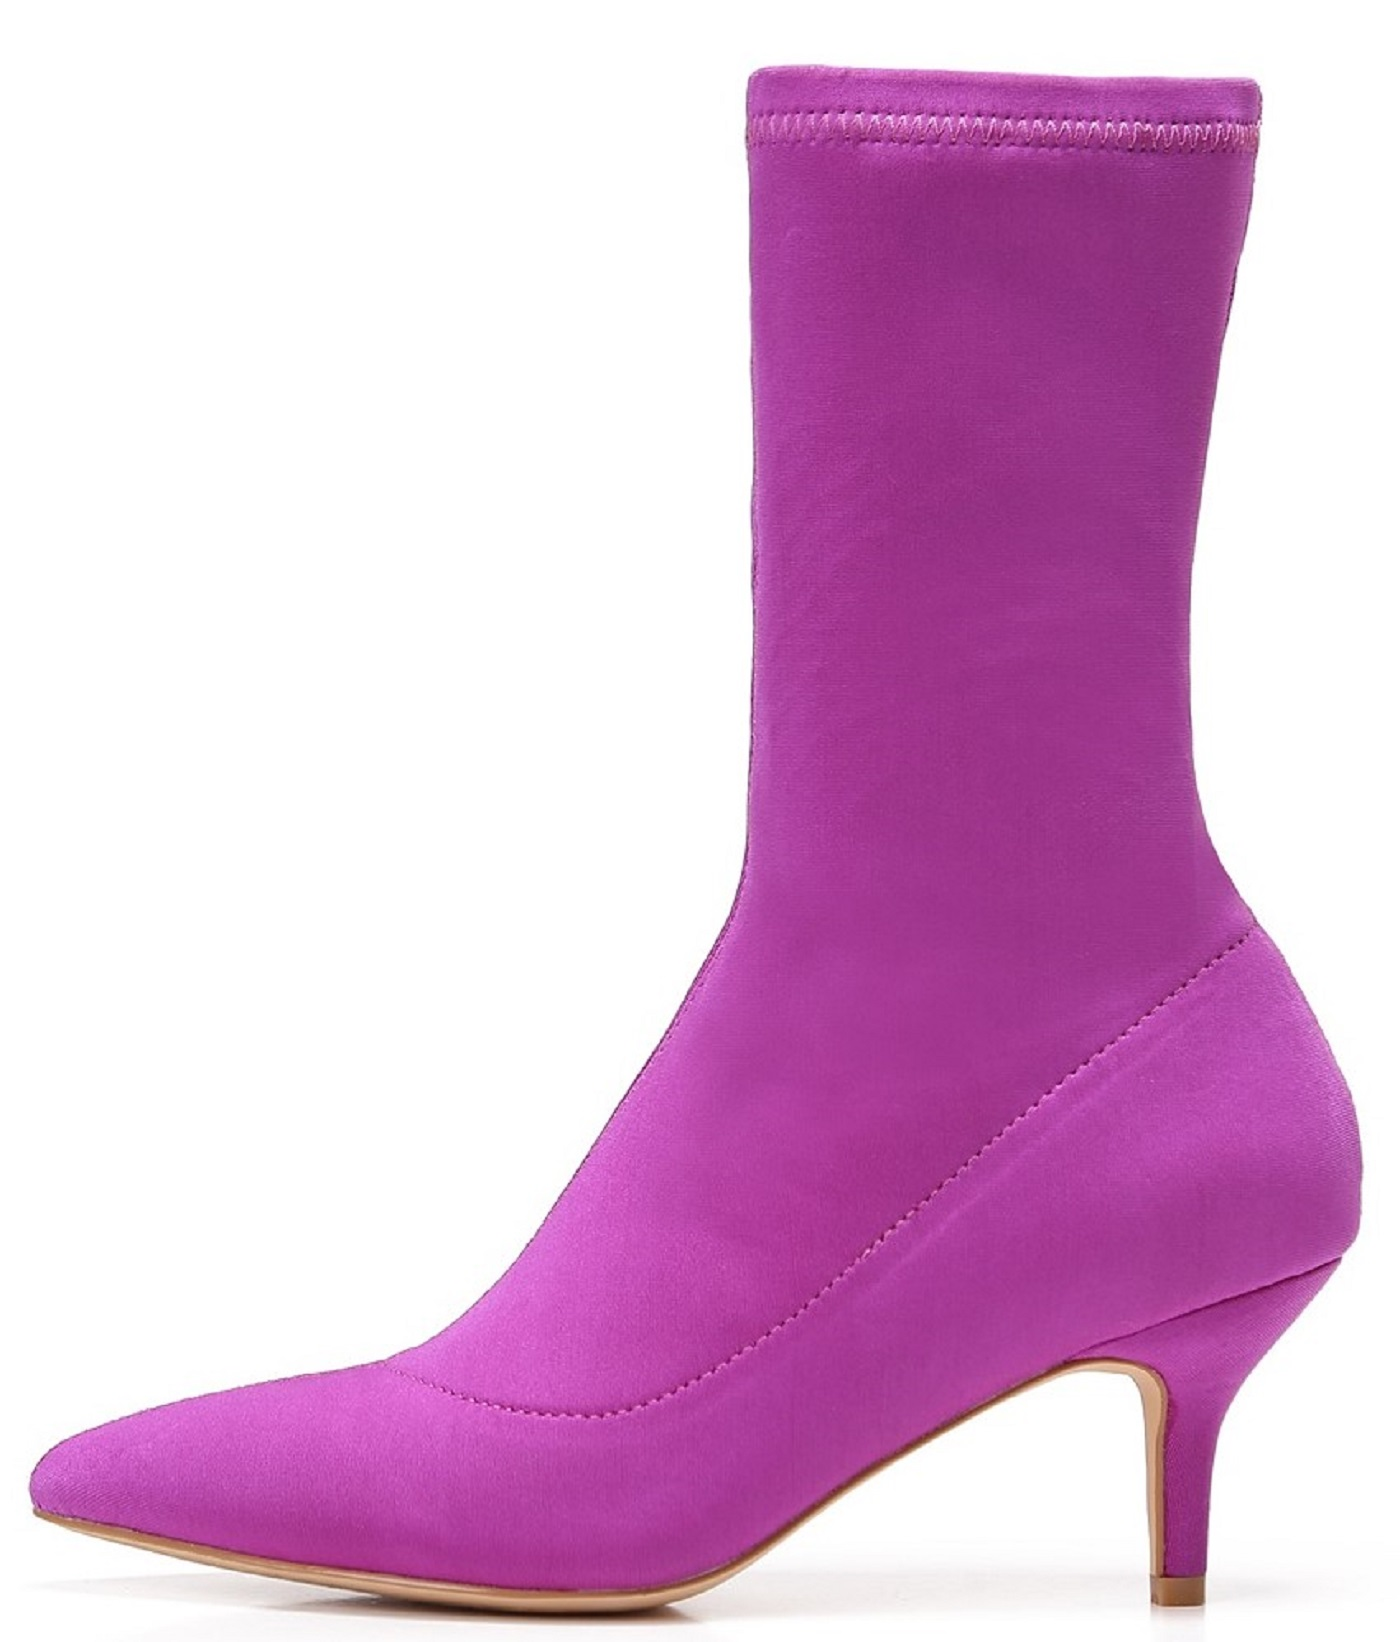 224-1 Elastic Stretchy Sock Ankle High Boots Kitten Heel Pointed Toe Purple